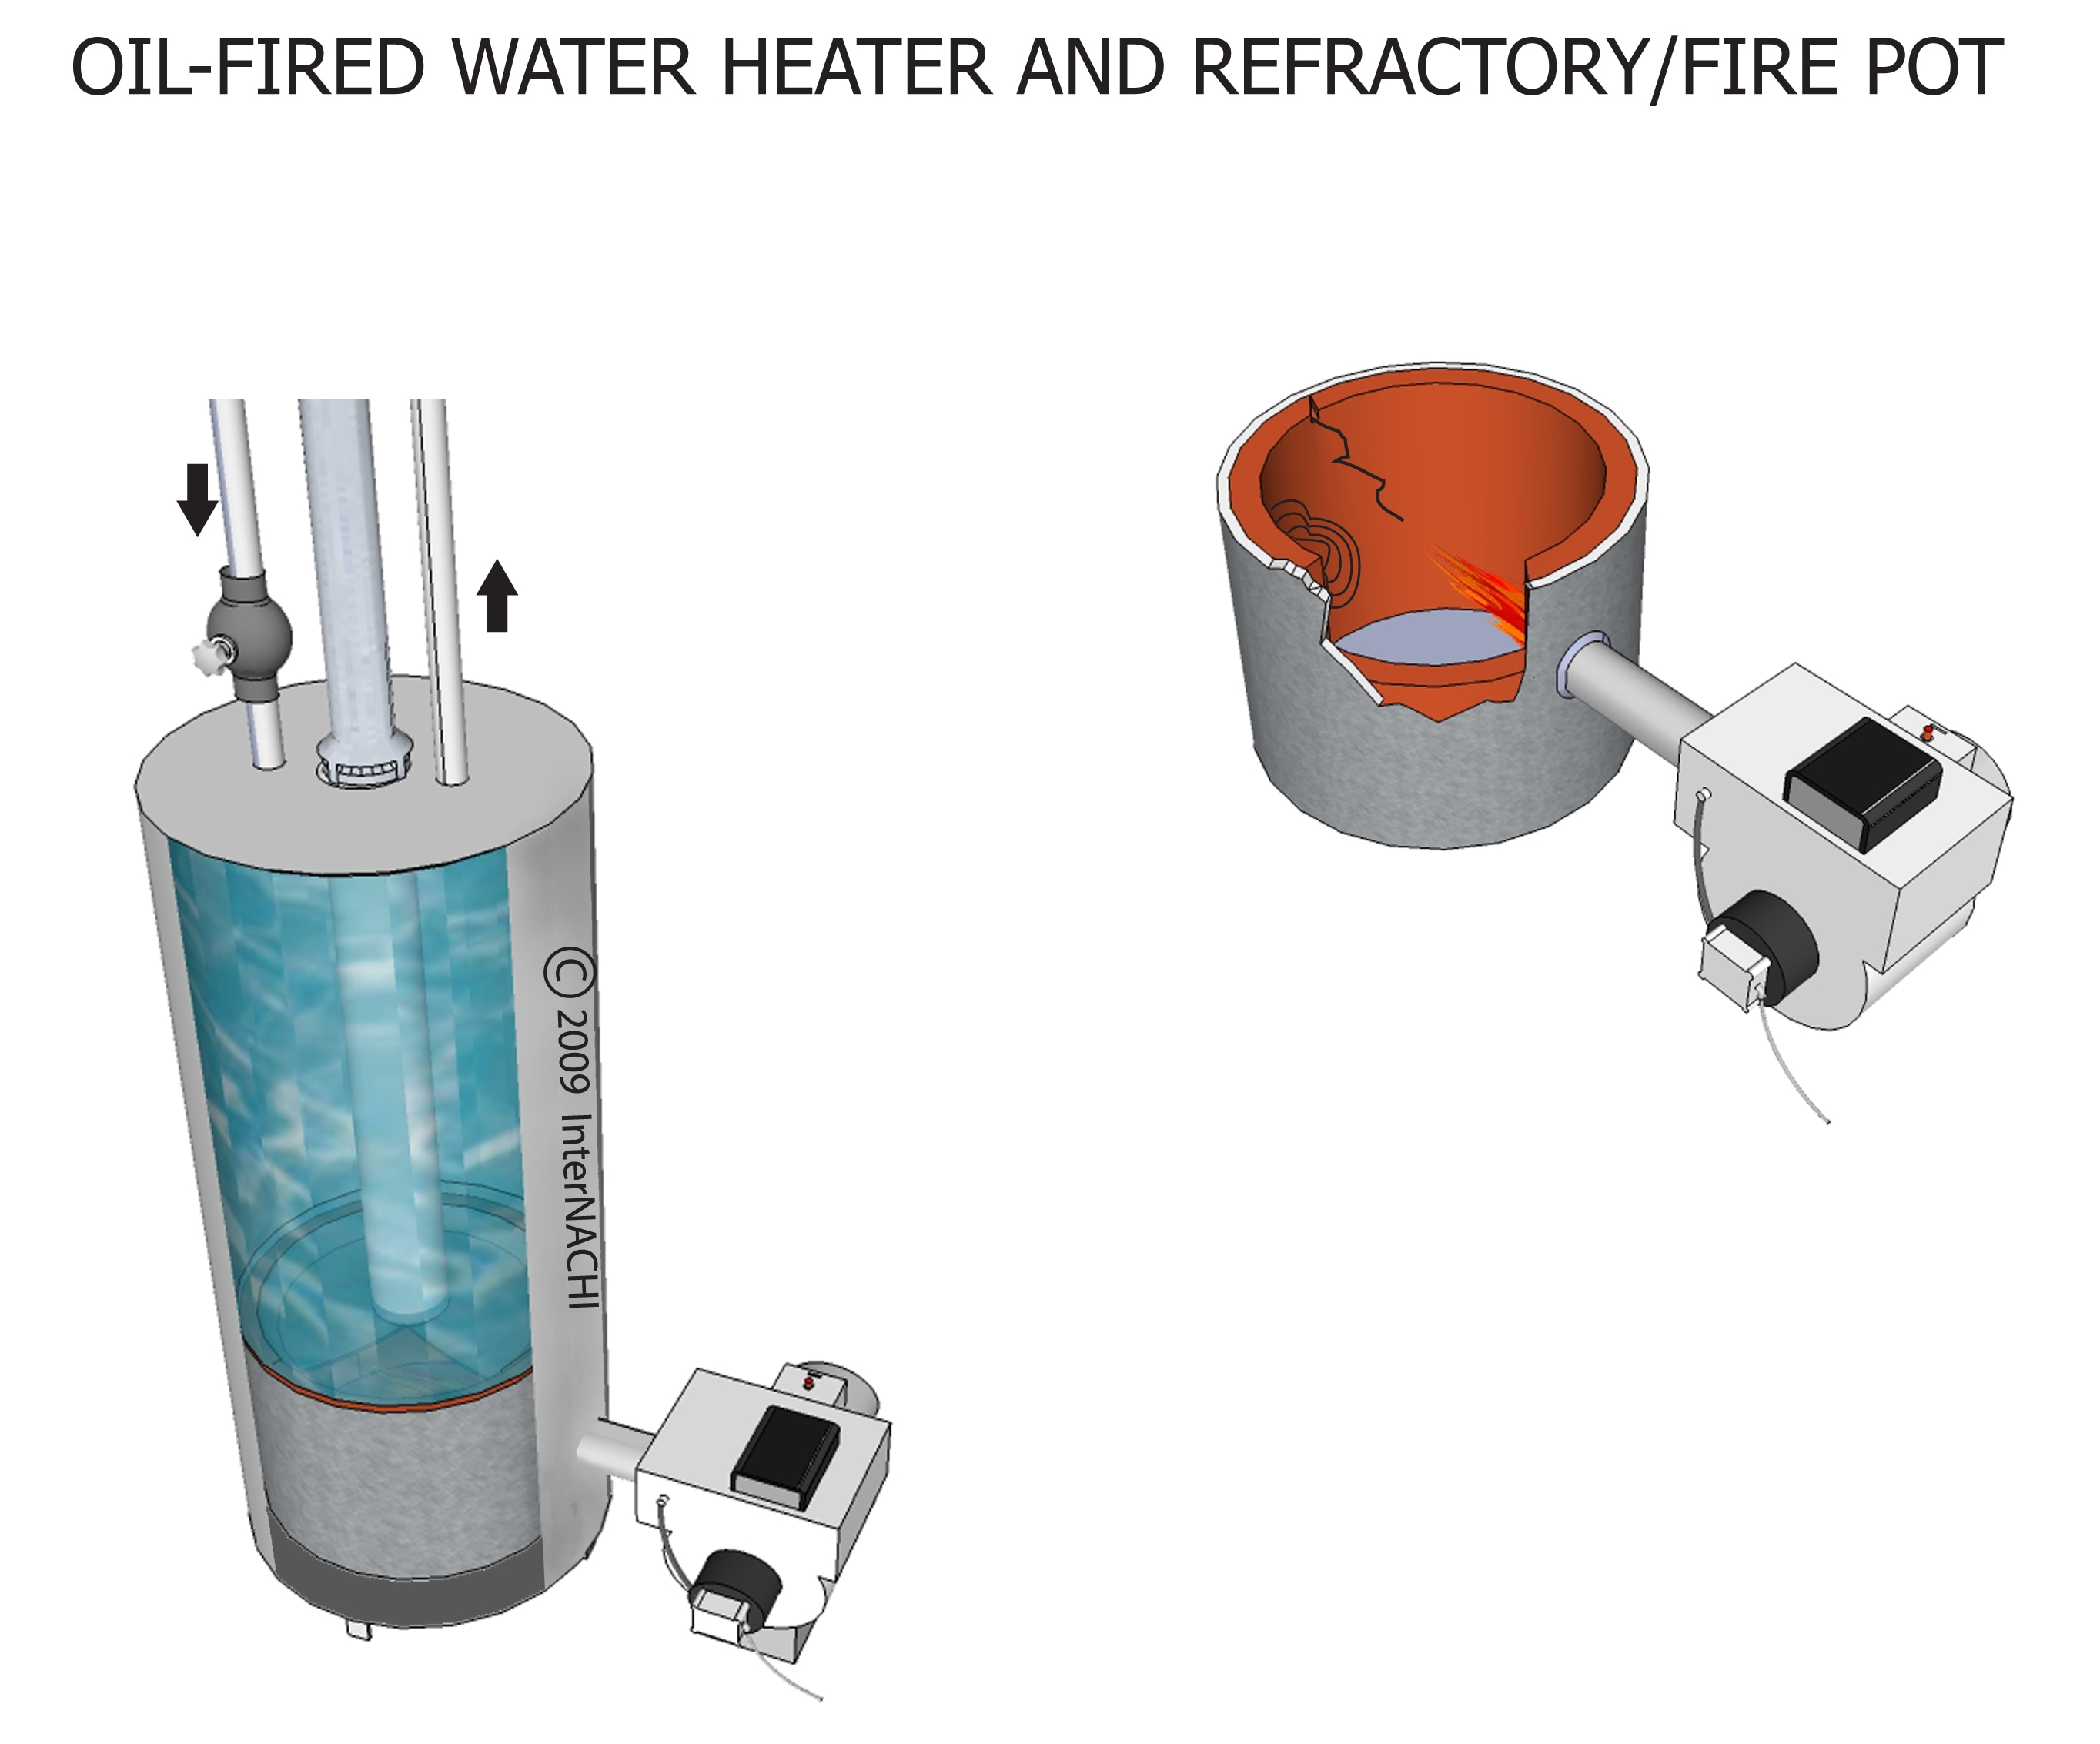 Oil-fired water heater and refactory.